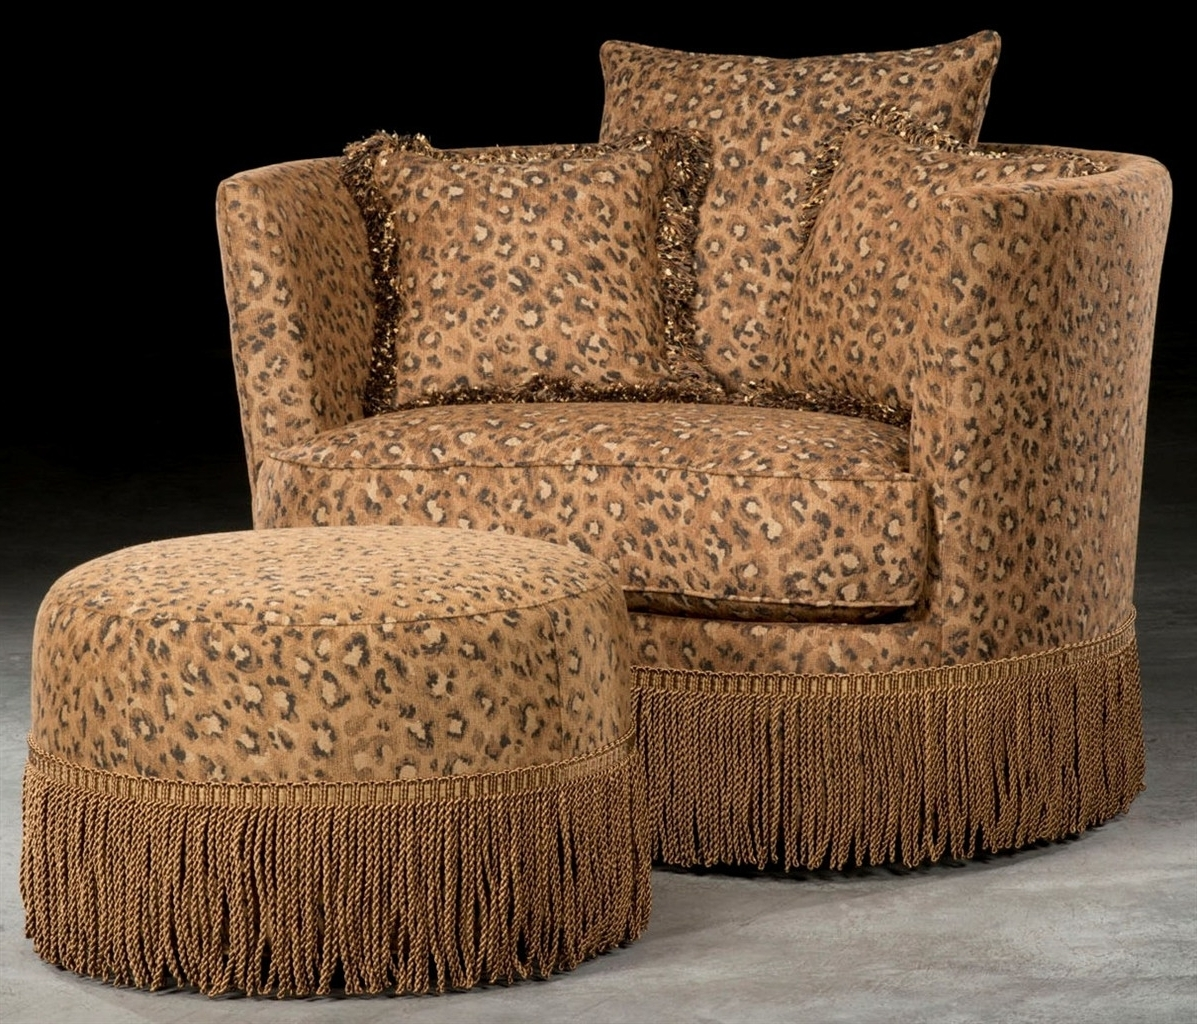 Zebra Print Chaise Lounge Chairs Throughout Latest Animal Print Ottoman Furniture Long Ottoman With Storage Light (View 13 of 15)